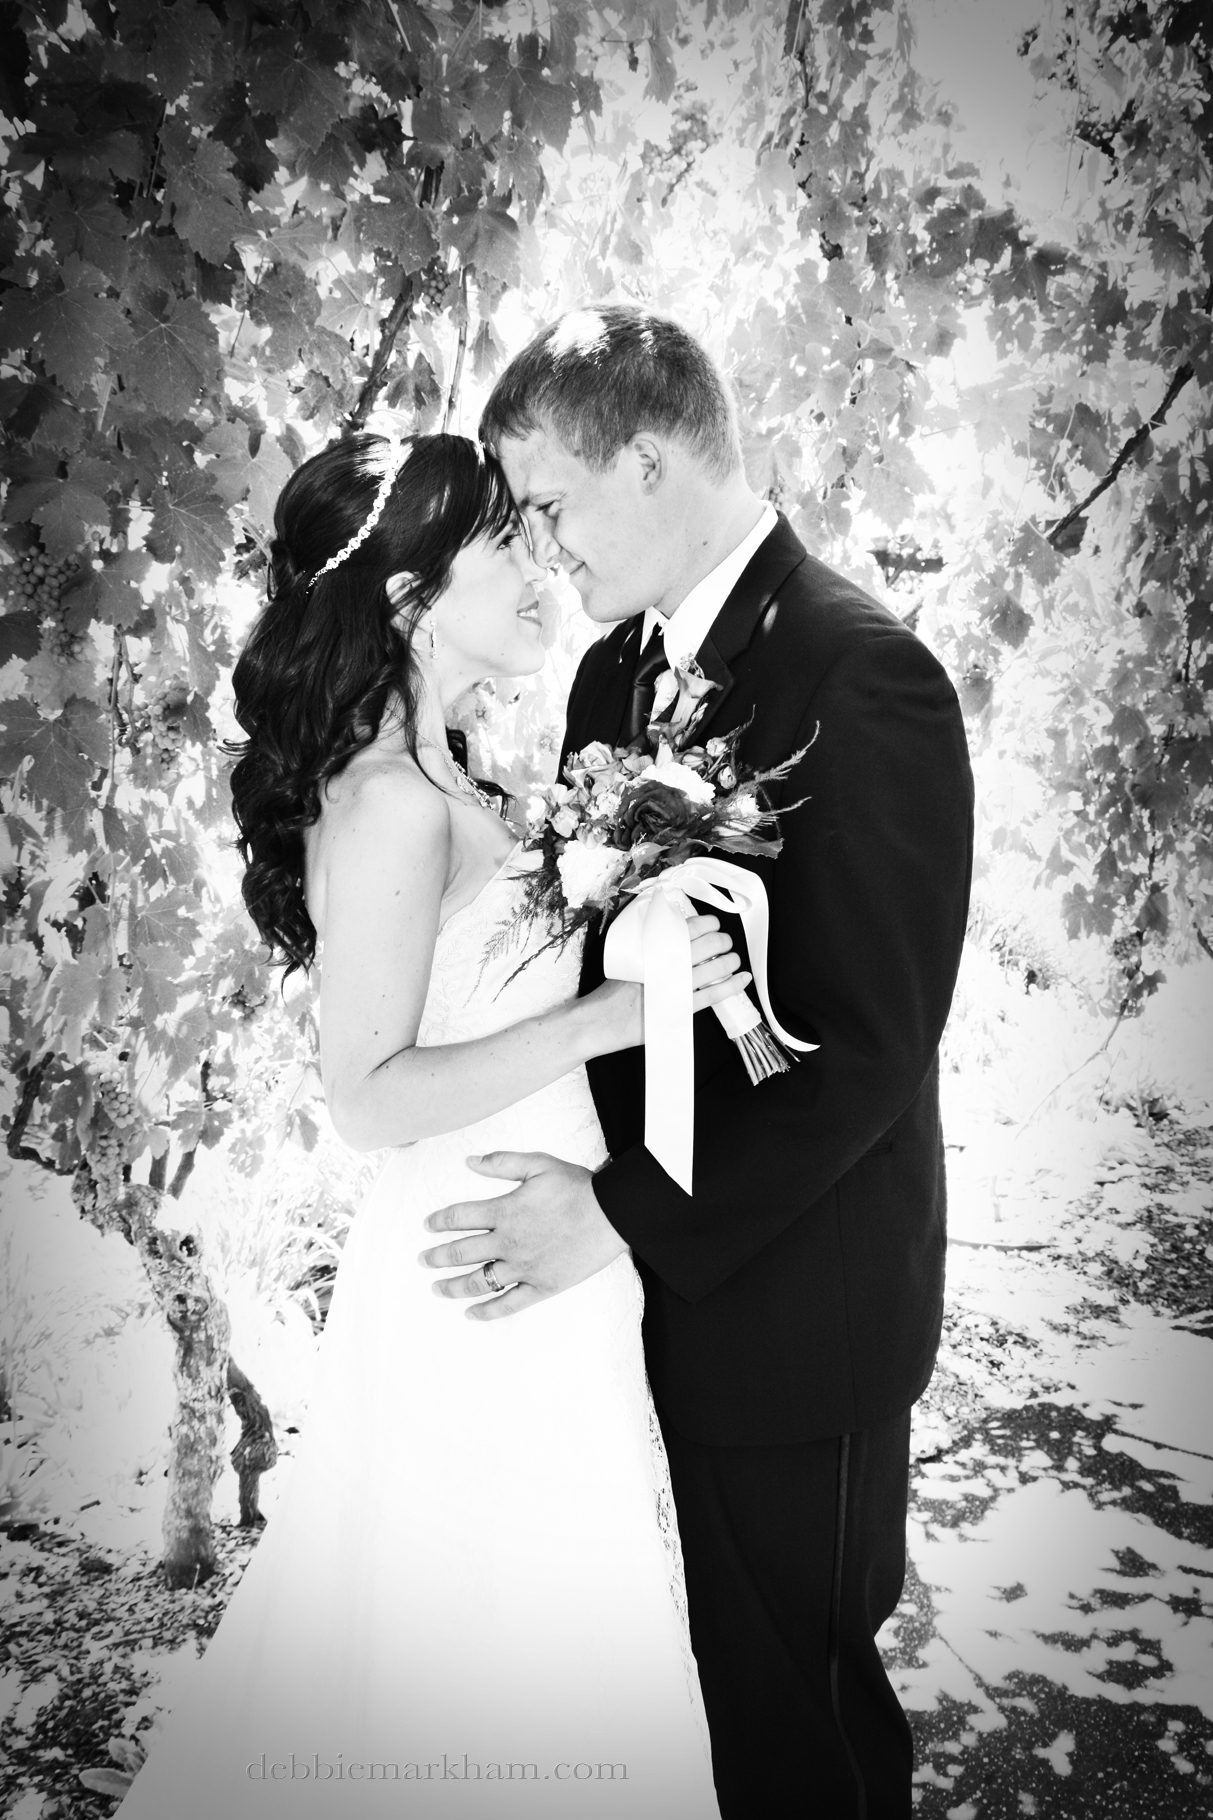 Cambria Photographer Debbie Markham-Paso Robles Wine Country Weddat Castoro Winery-under the grapevine trellis black and white